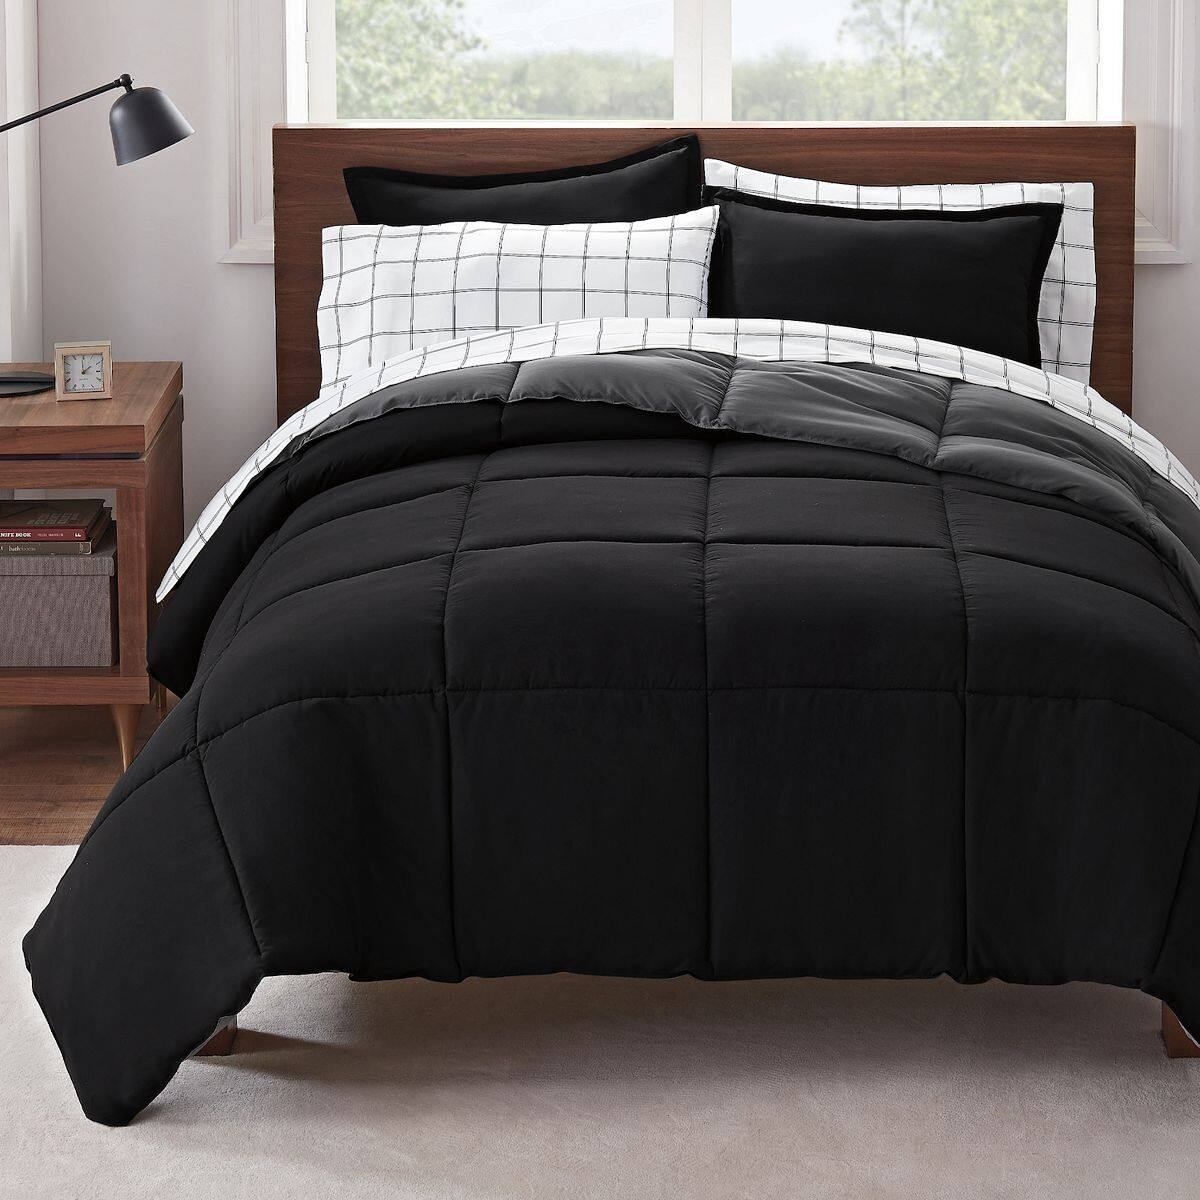 Serta Simply Clean Antimicrobial Reversible Comforter Set w/ Sheets